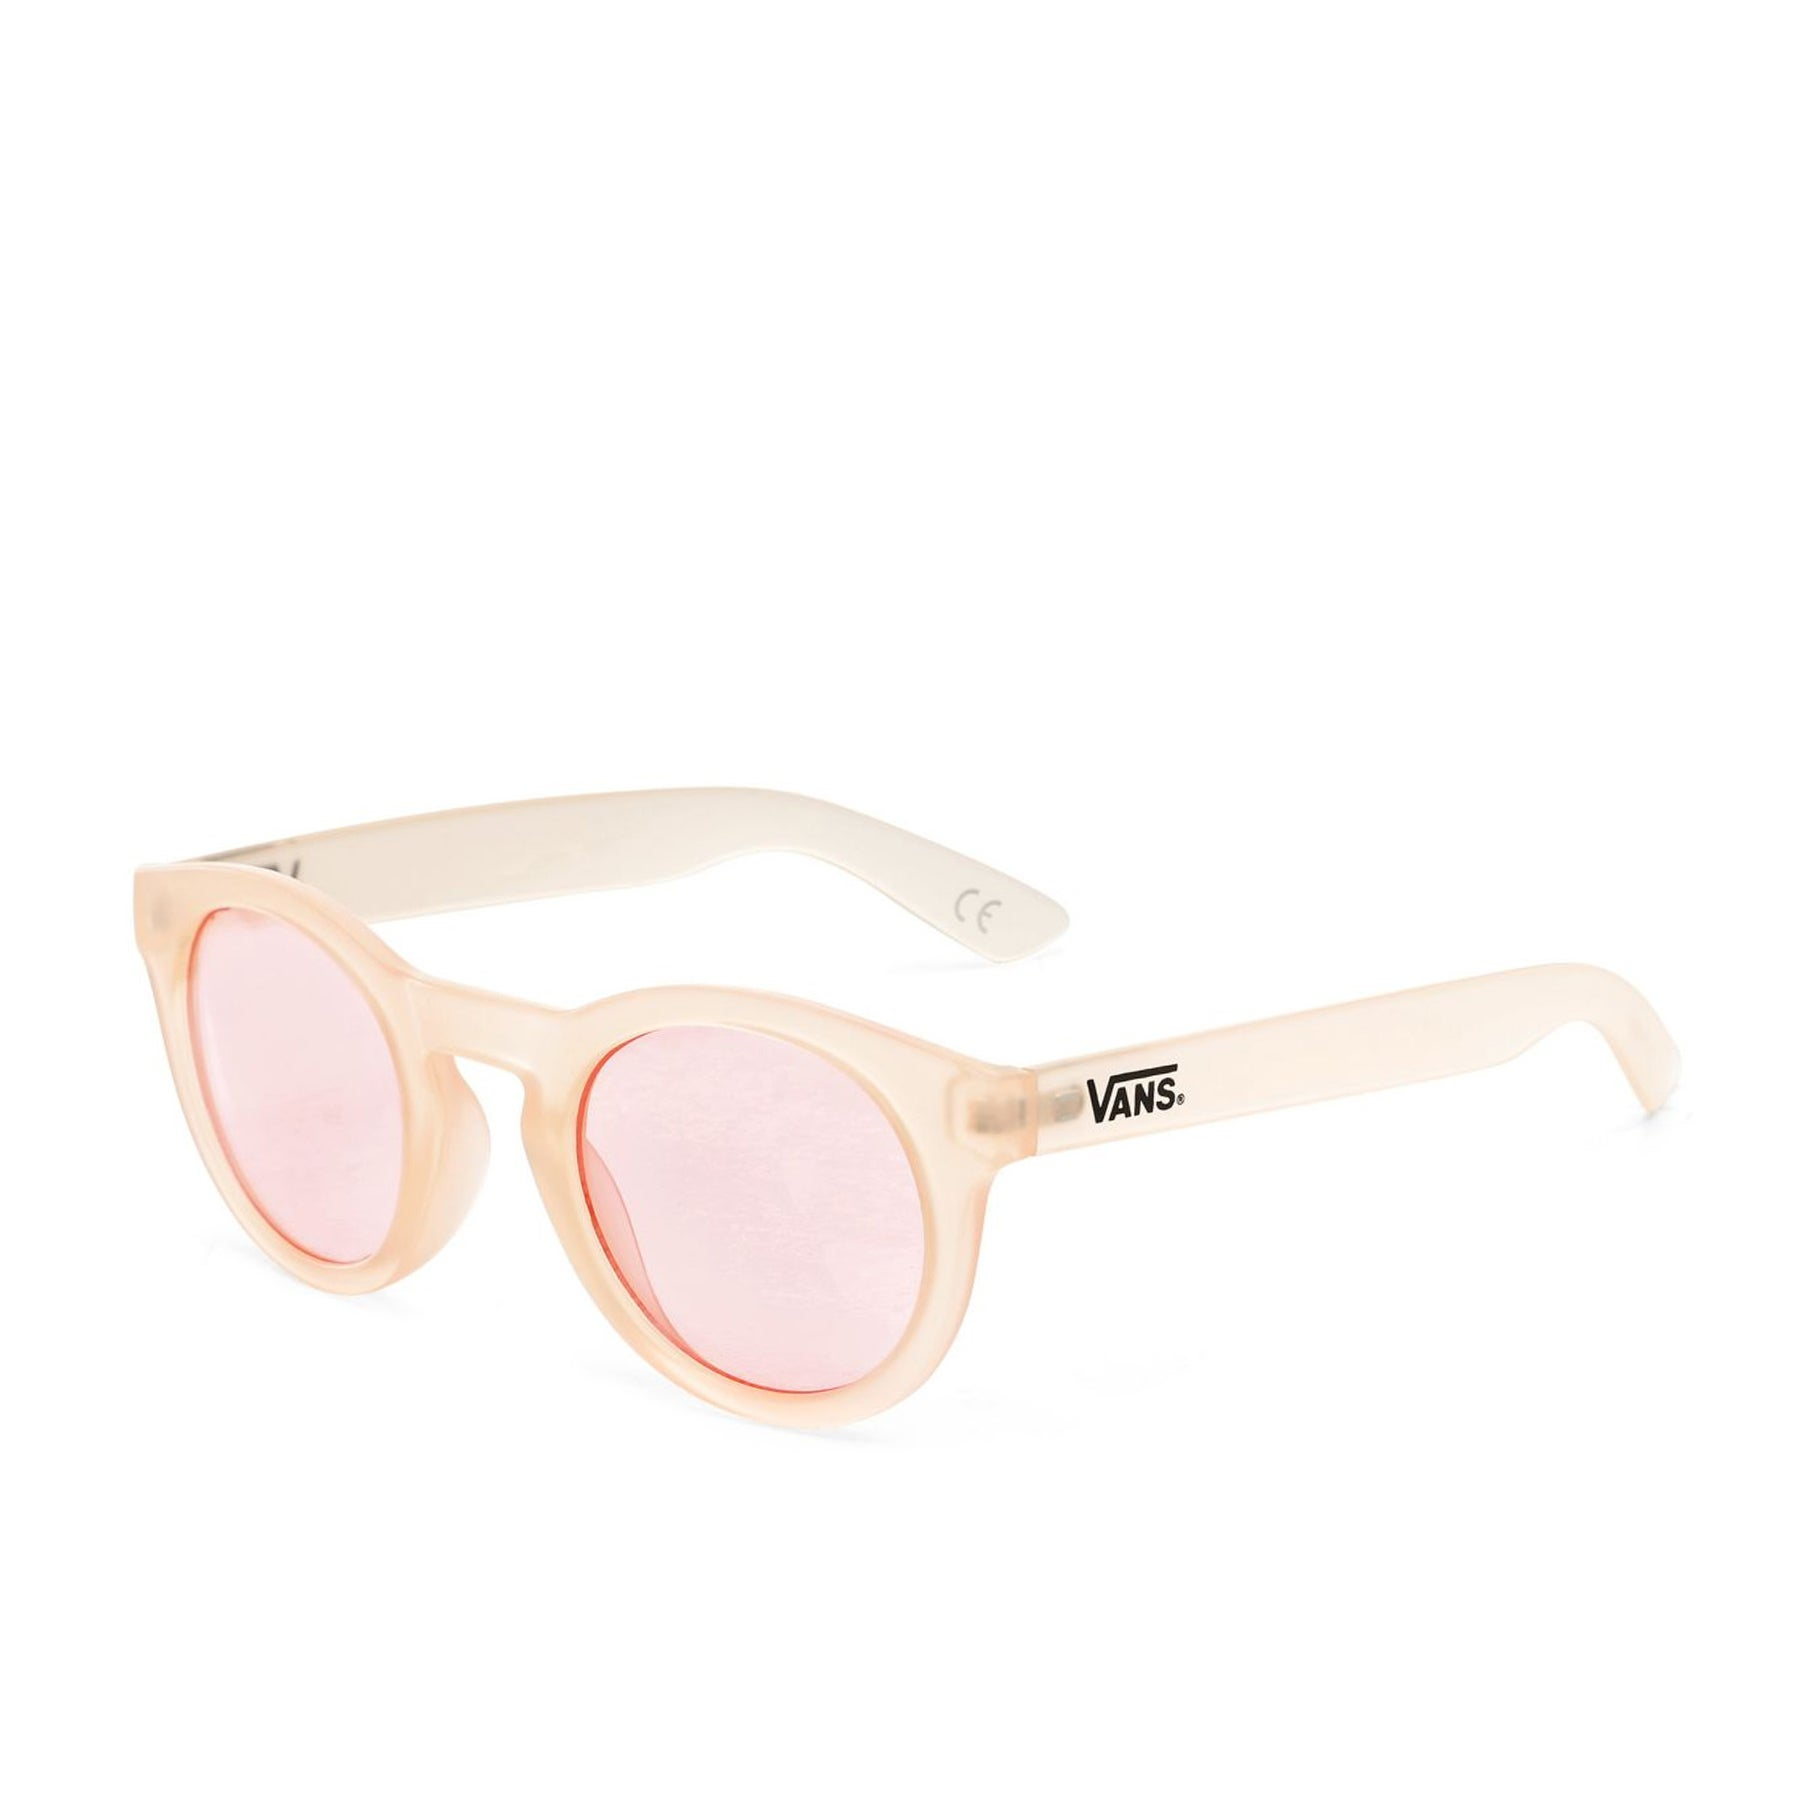 Vans Lolligagger Womens Sunglasses - Frosted Translucent